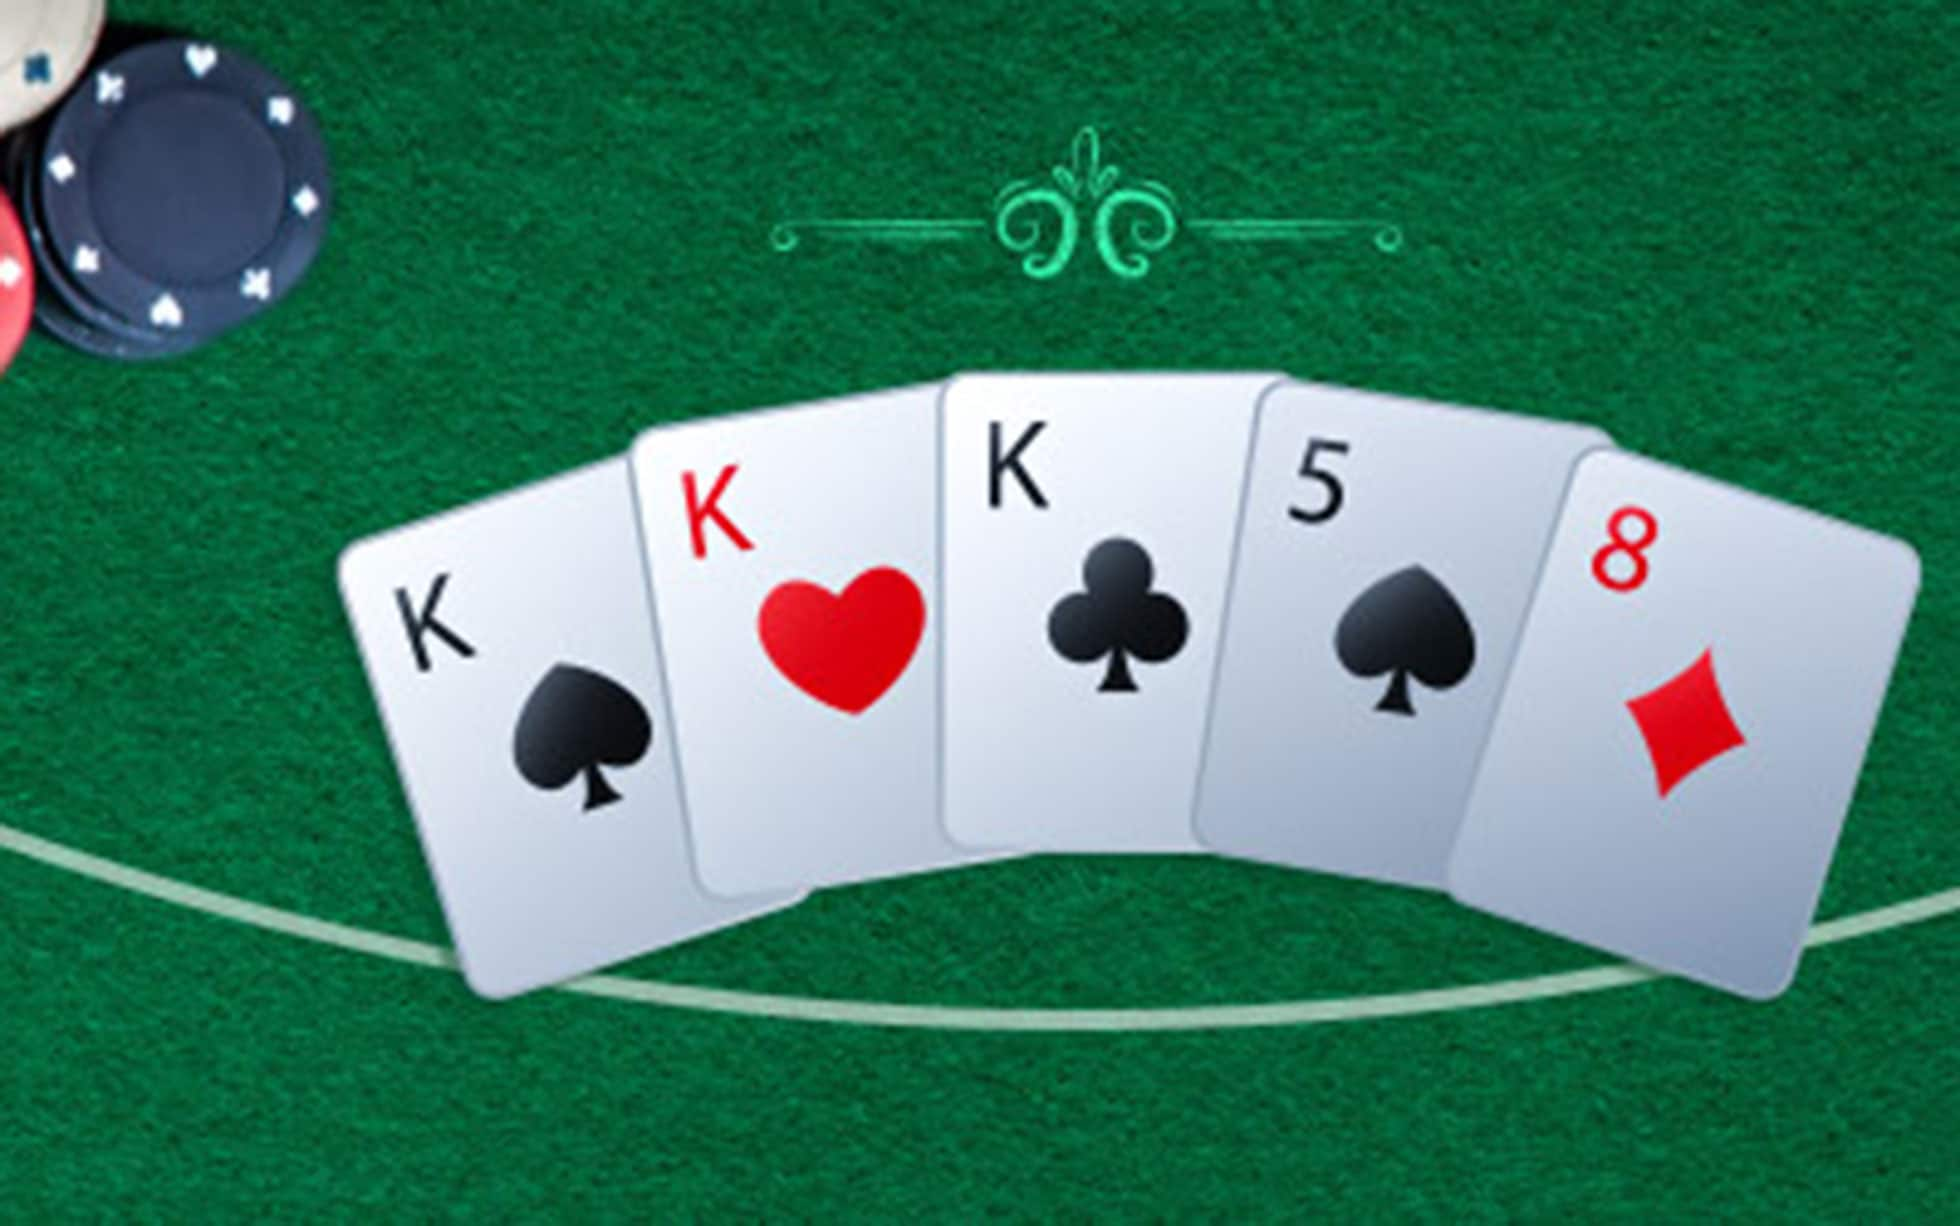 Are You Wondering How To Make Your Online Casino Rock